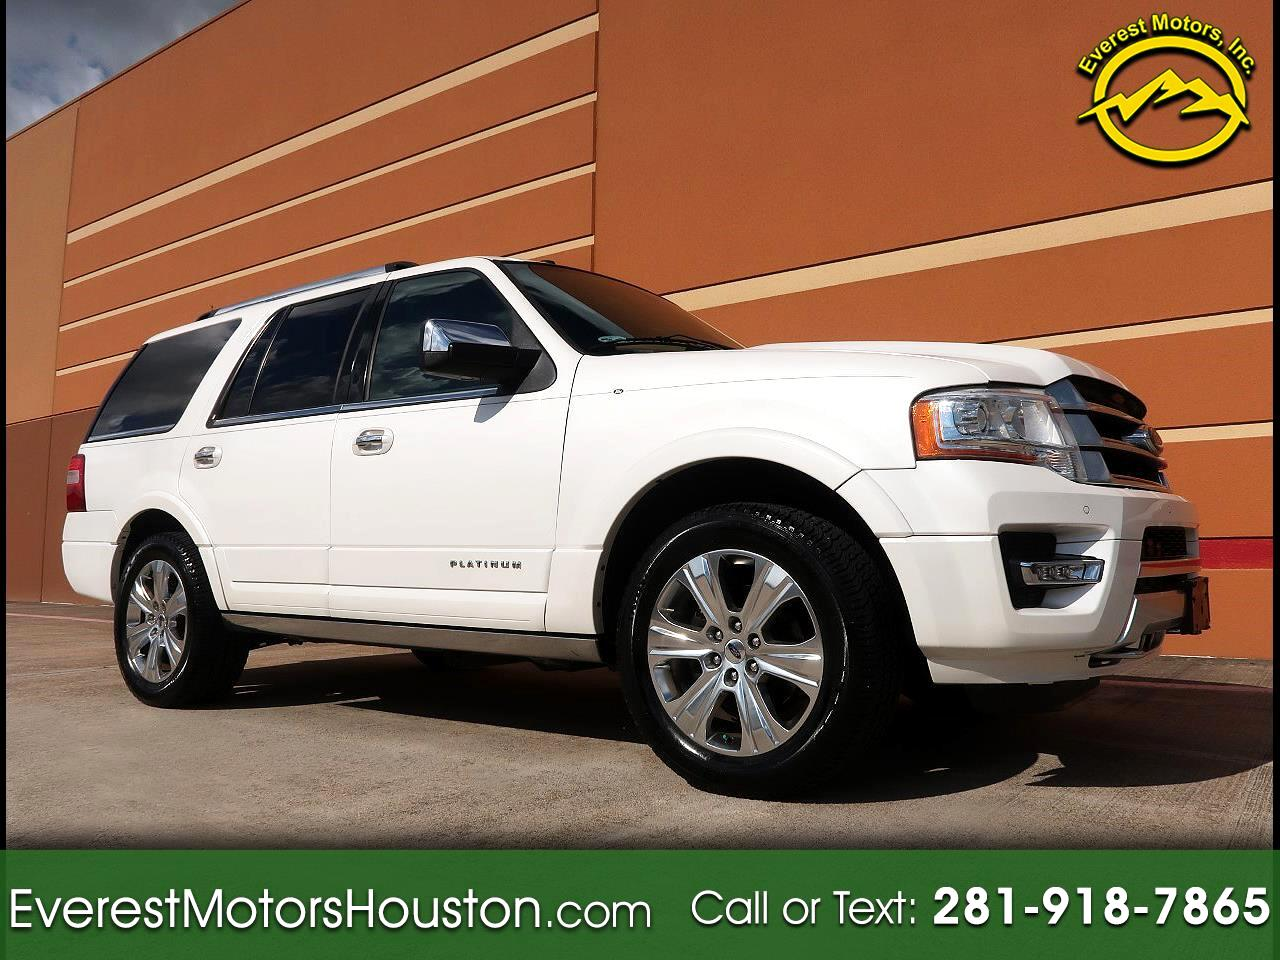 2015 Ford Expedition Platinum 4X4 20